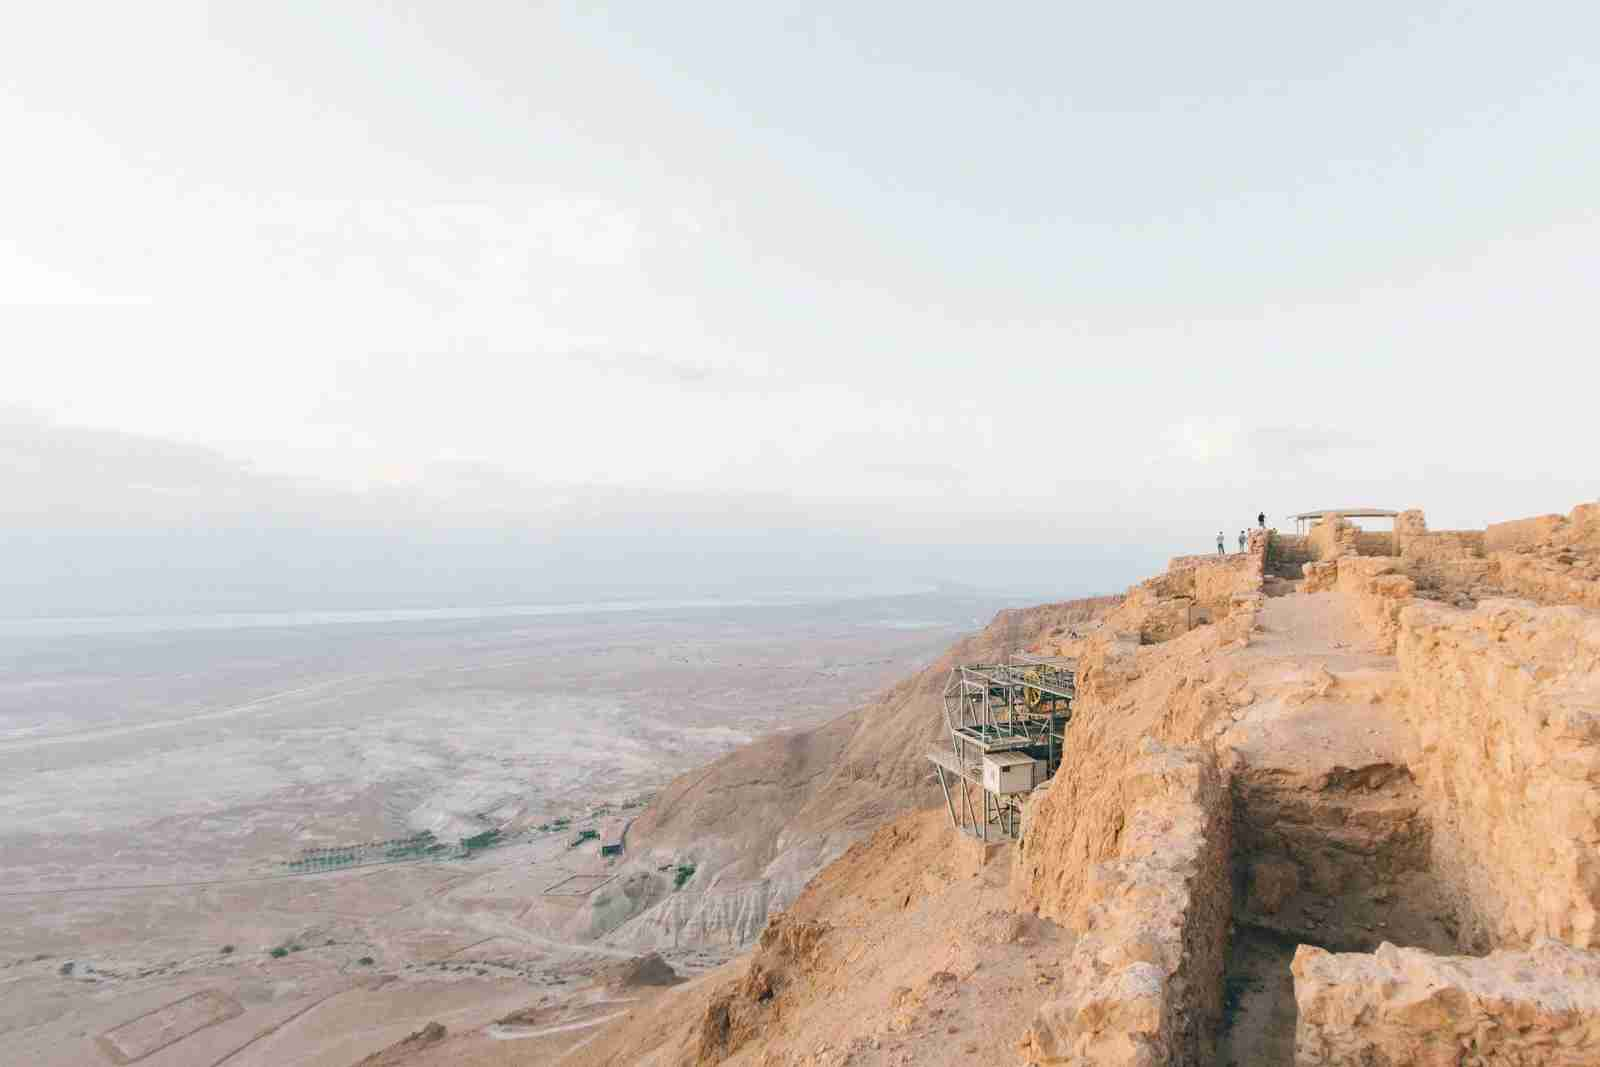 Masada National Park, Israel. (Photo by Robert Bye/Unsplash)